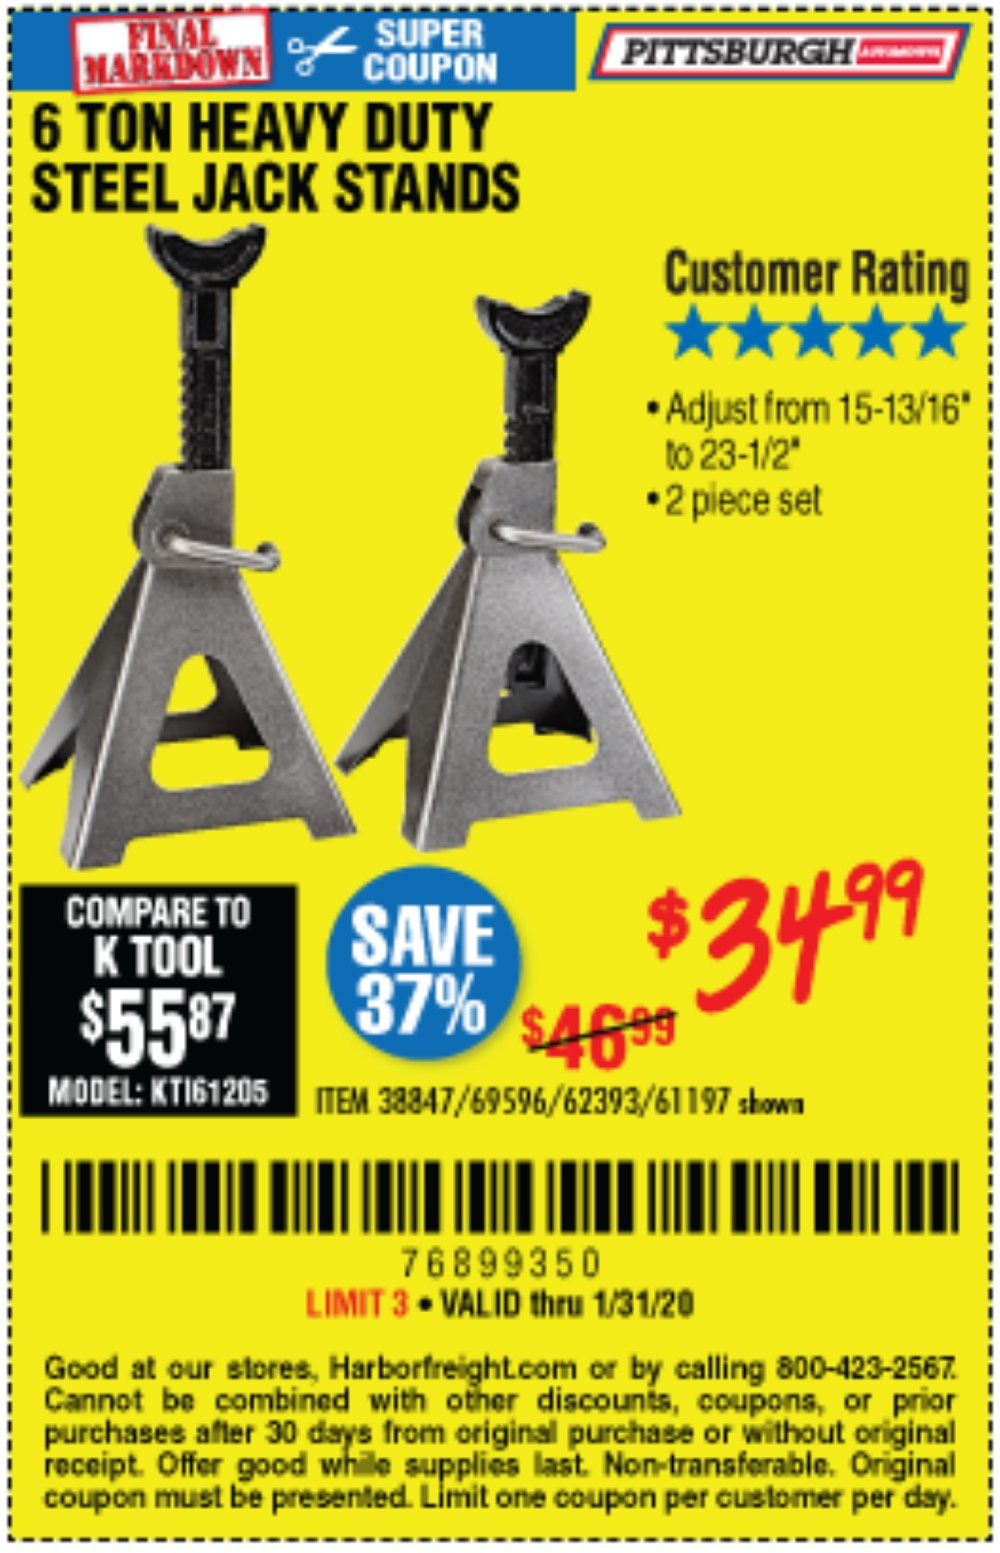 Harbor Freight Coupon, HF Coupons - 6 Ton Heavy Duty Steel Jack Stands